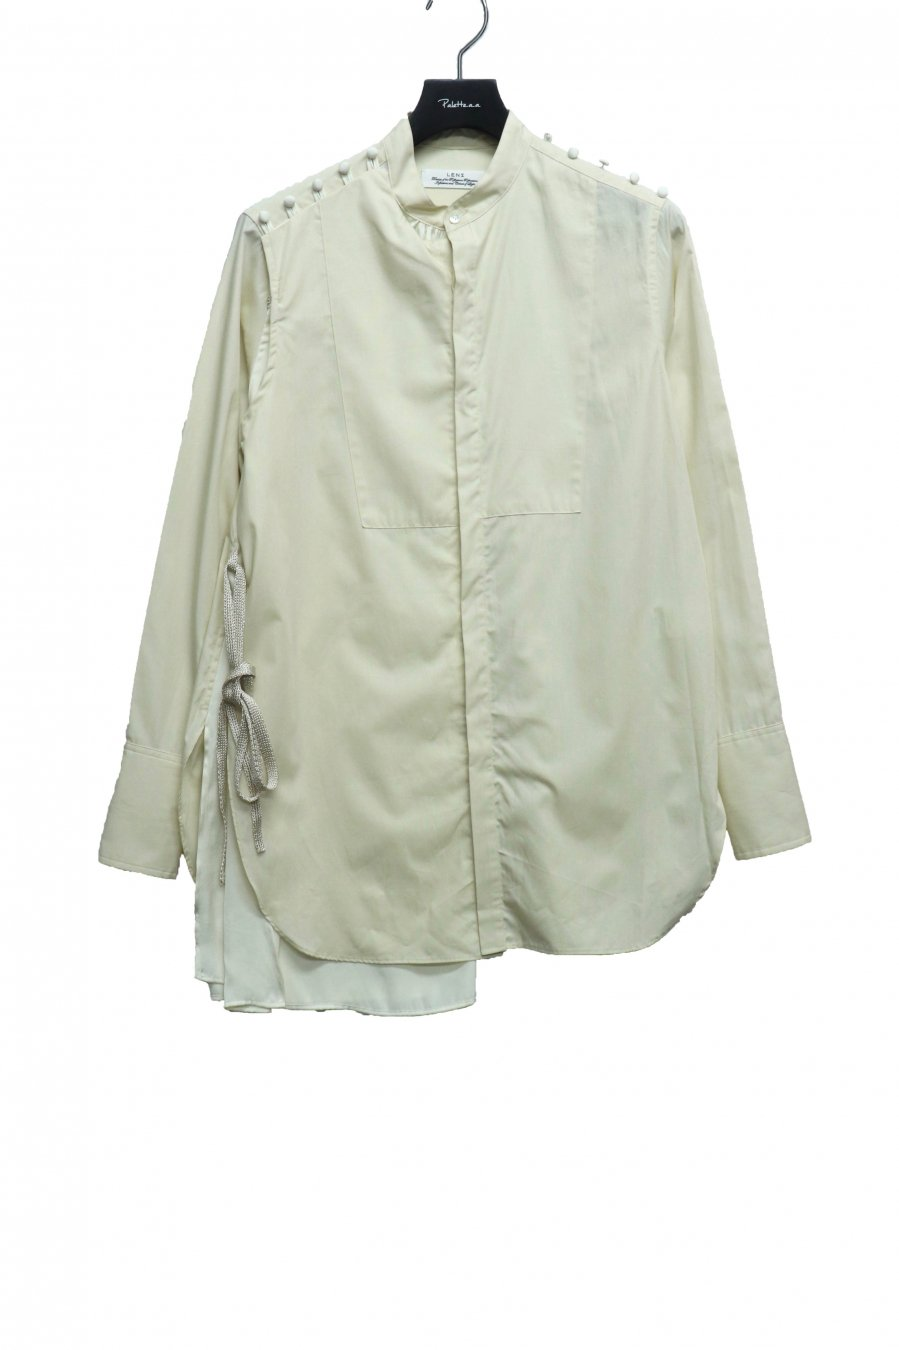 LENZ   2WAY SHIRT(IVORY)<img class='new_mark_img2' src='https://img.shop-pro.jp/img/new/icons15.gif' style='border:none;display:inline;margin:0px;padding:0px;width:auto;' />